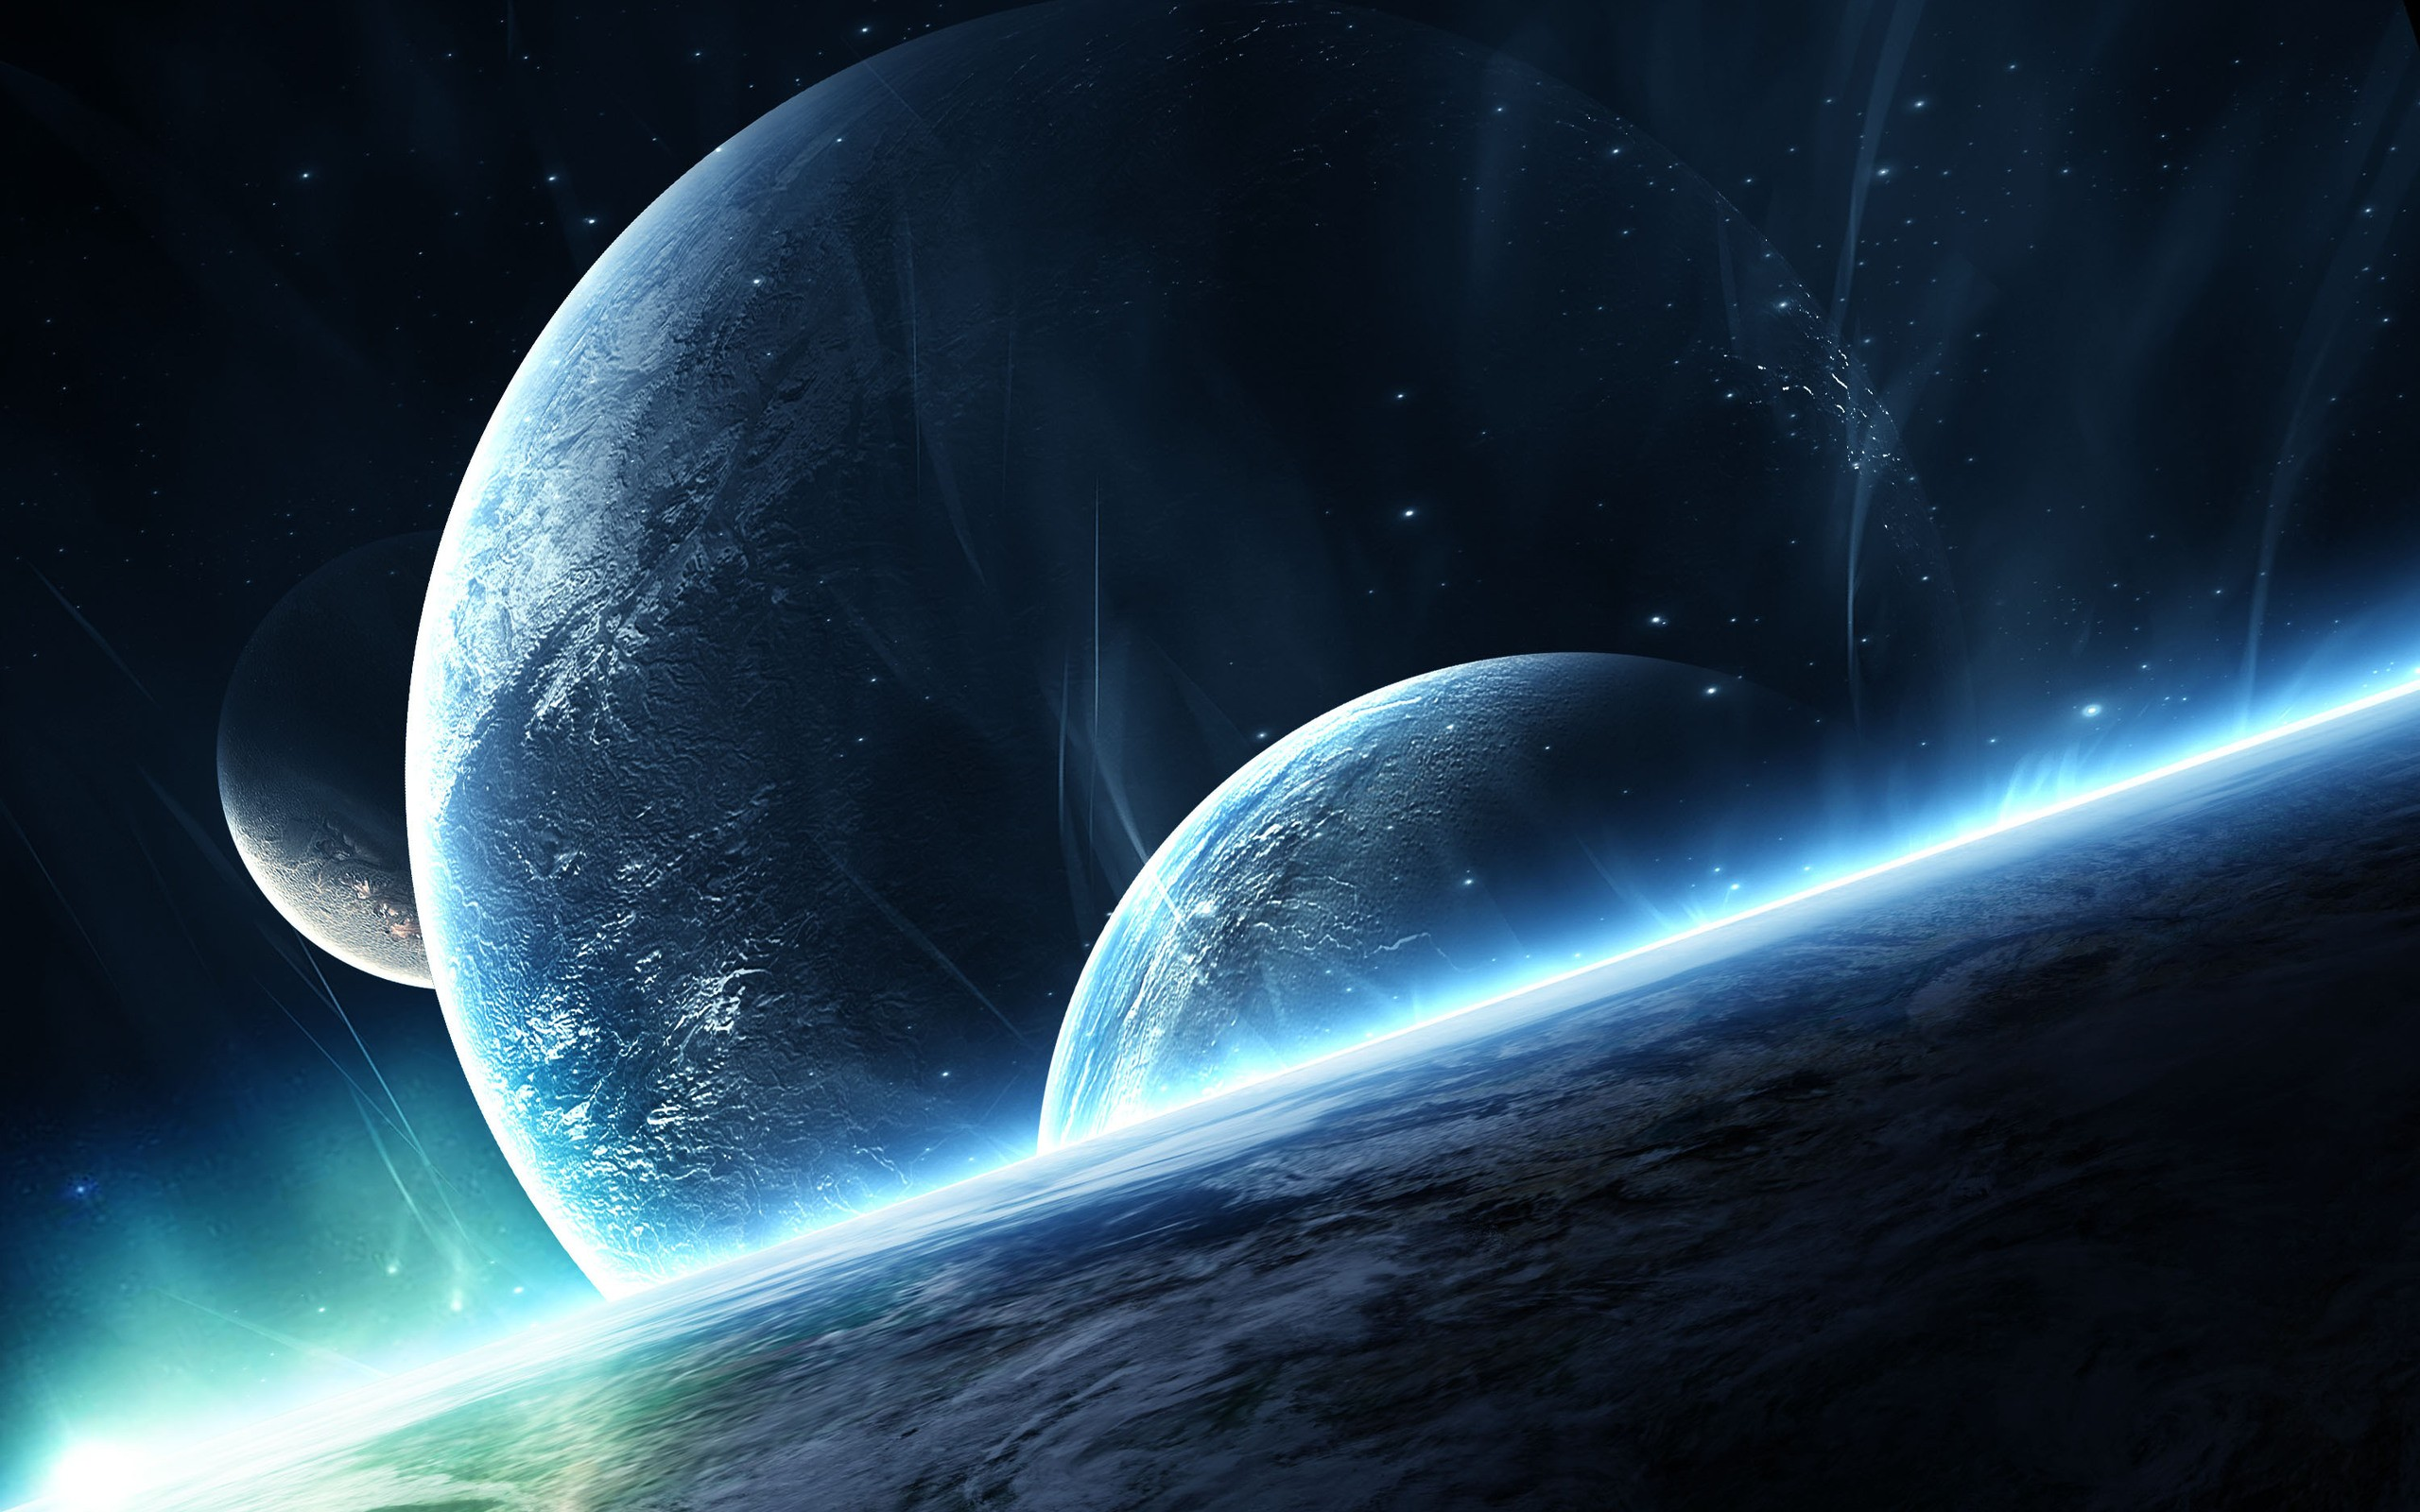 3D space scene HD wallpapers.